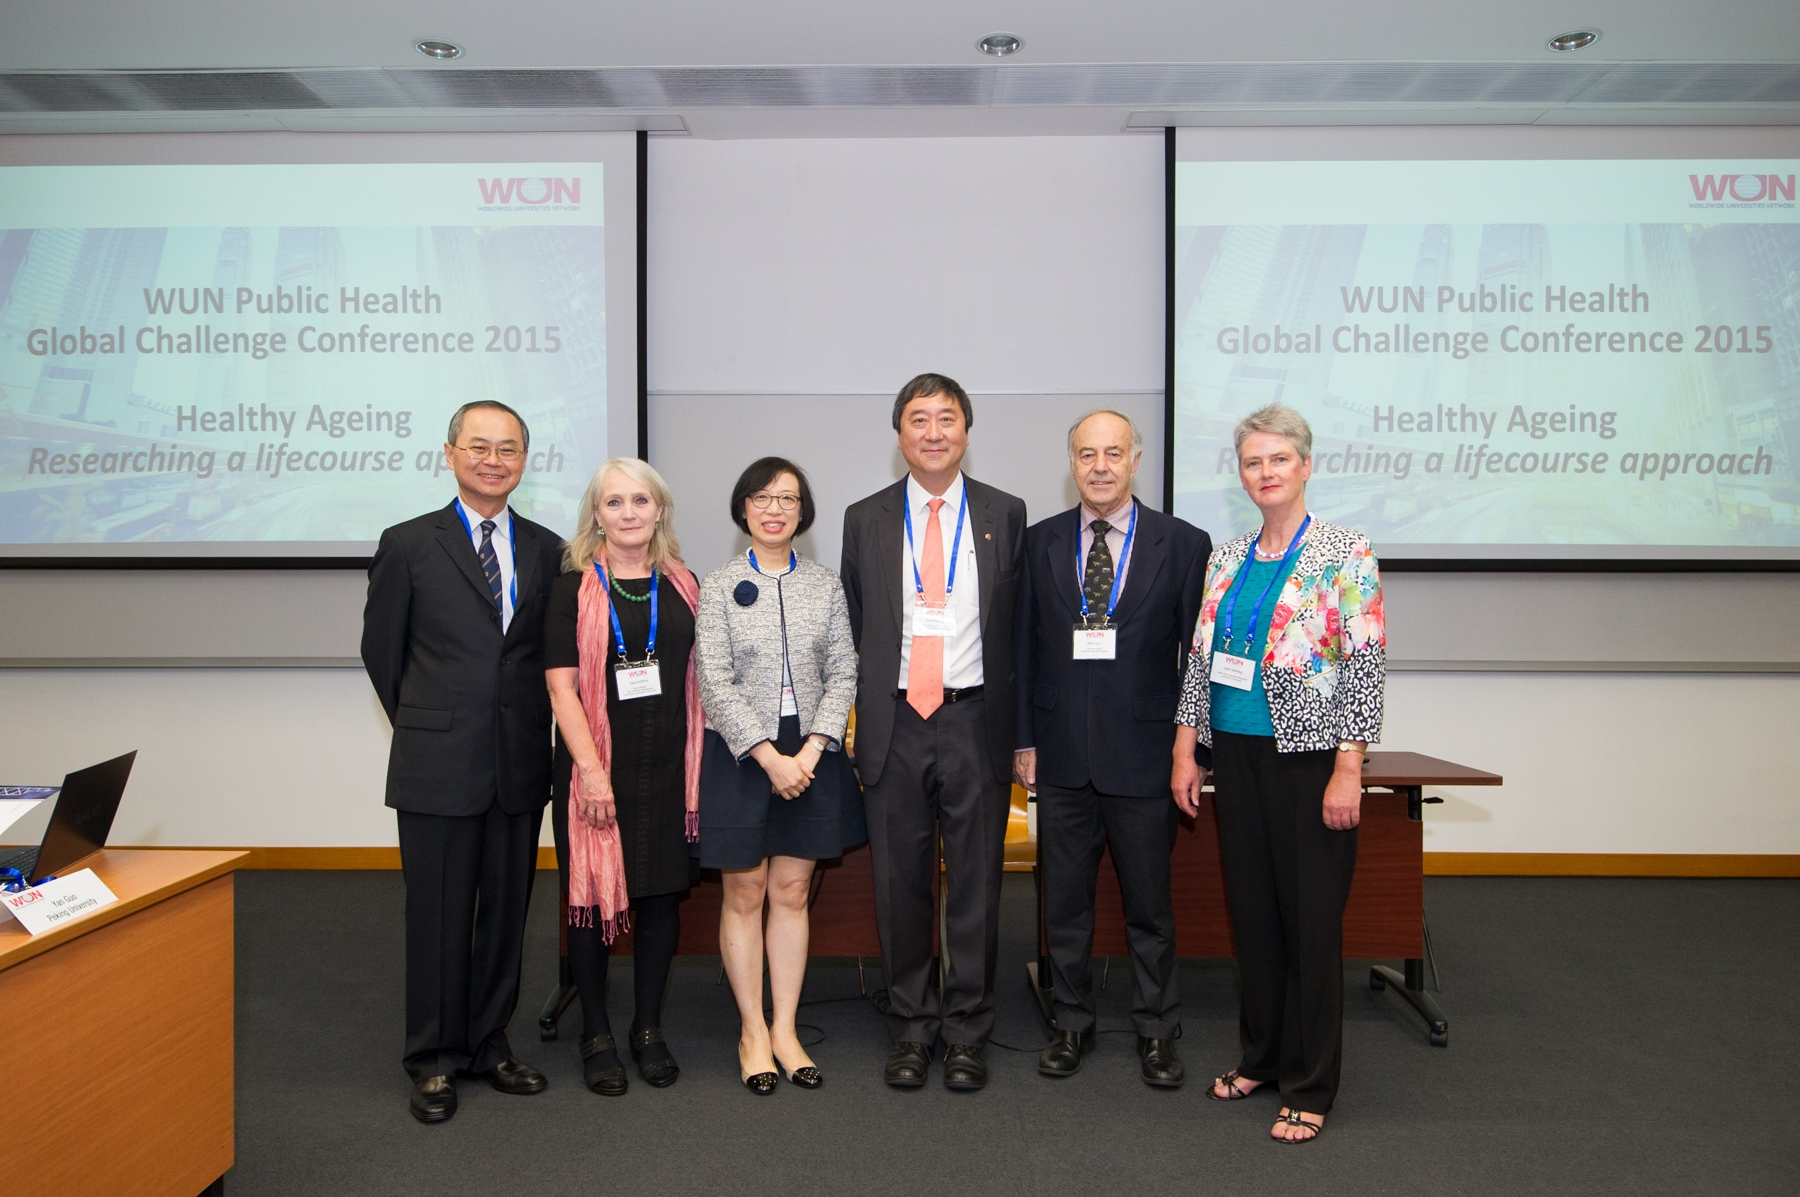 (From left) Prof. Tai-fai Fok, Pro-Vice-Chancellor, CUHK; Prof. Sian Griffiths, Emeritus Professor, Jockey Club School of Public Health and Primary Care; Prof. Sophia Chan, Under Secretary for Food & Health of the HKSAR Government; Prof. Joseph Sung, Vice-Chancellor, CUHK; Prof. John Hearn, Executive Director, WUN; and Prof. Jane Harding, Deputy-Vice Chancellor (Research), The University of Auckland at the WUN Public Health Global Challenge Conference  on Healthy Ageing